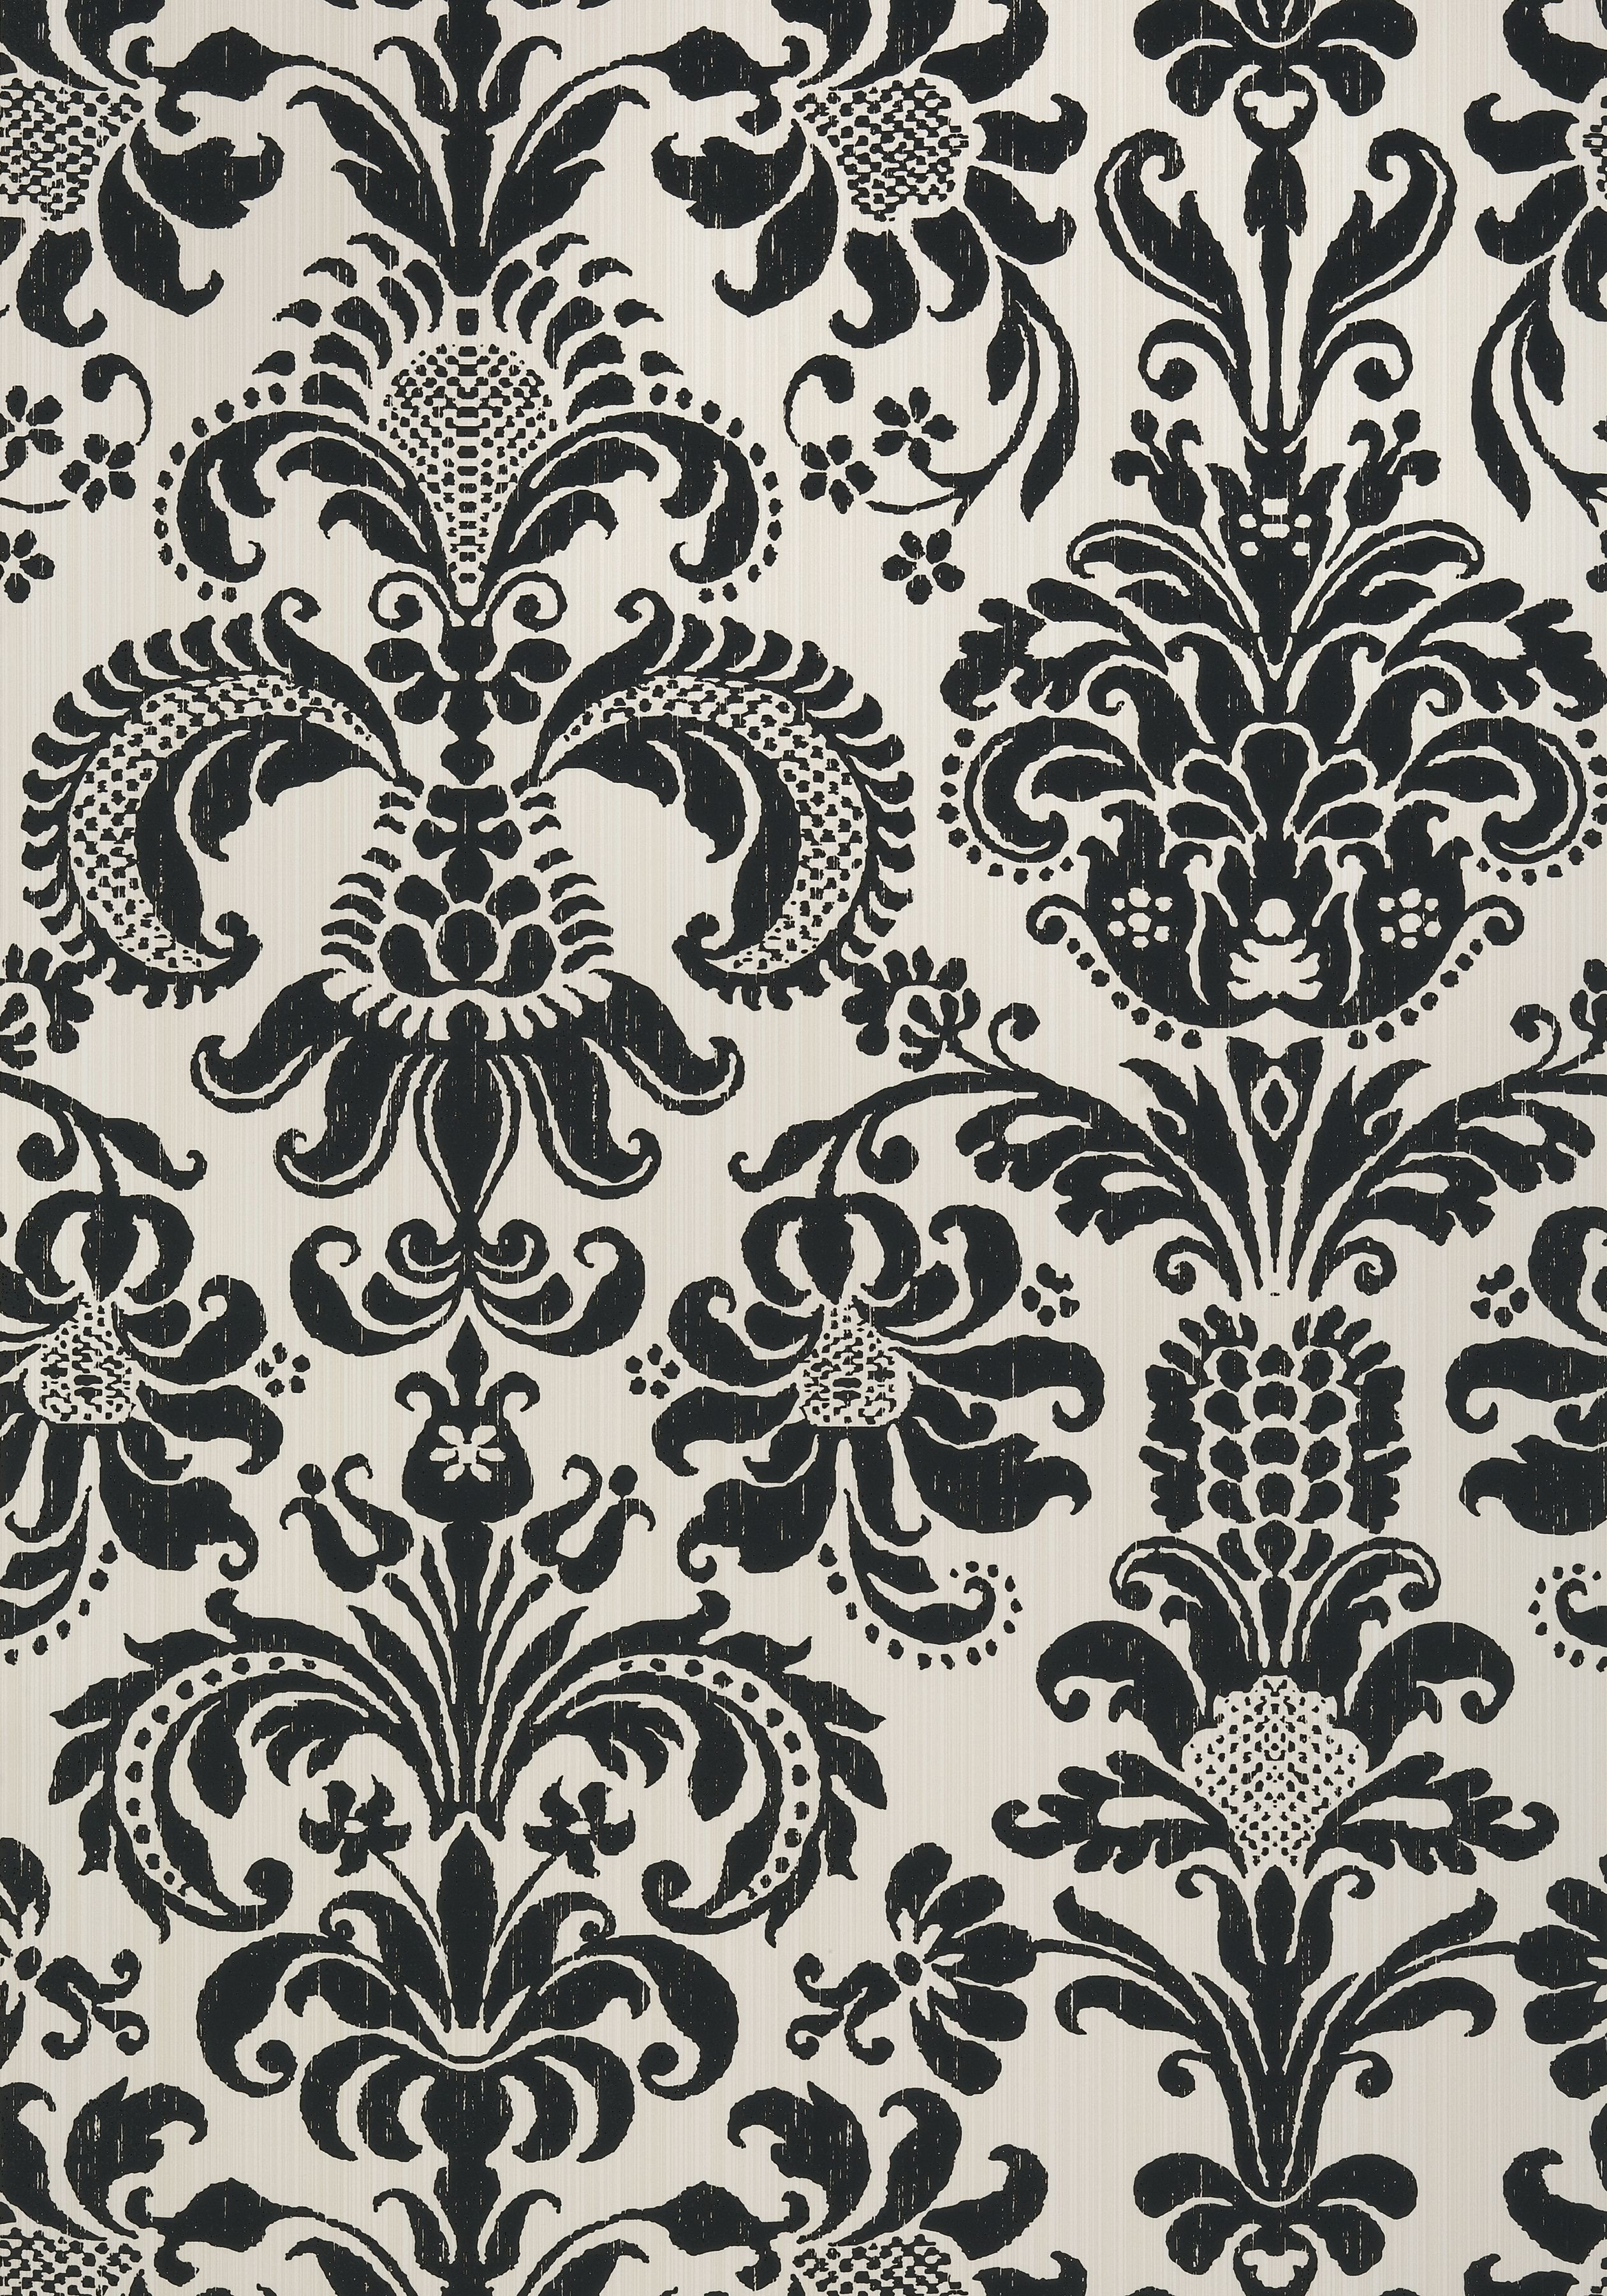 Ashley Black On Cream T89167 Collection Damask Resource 4 From Thibaut Wallpaper Connection Call Our Blue And White Wallpaper Thibaut Wallpaper Thibaut